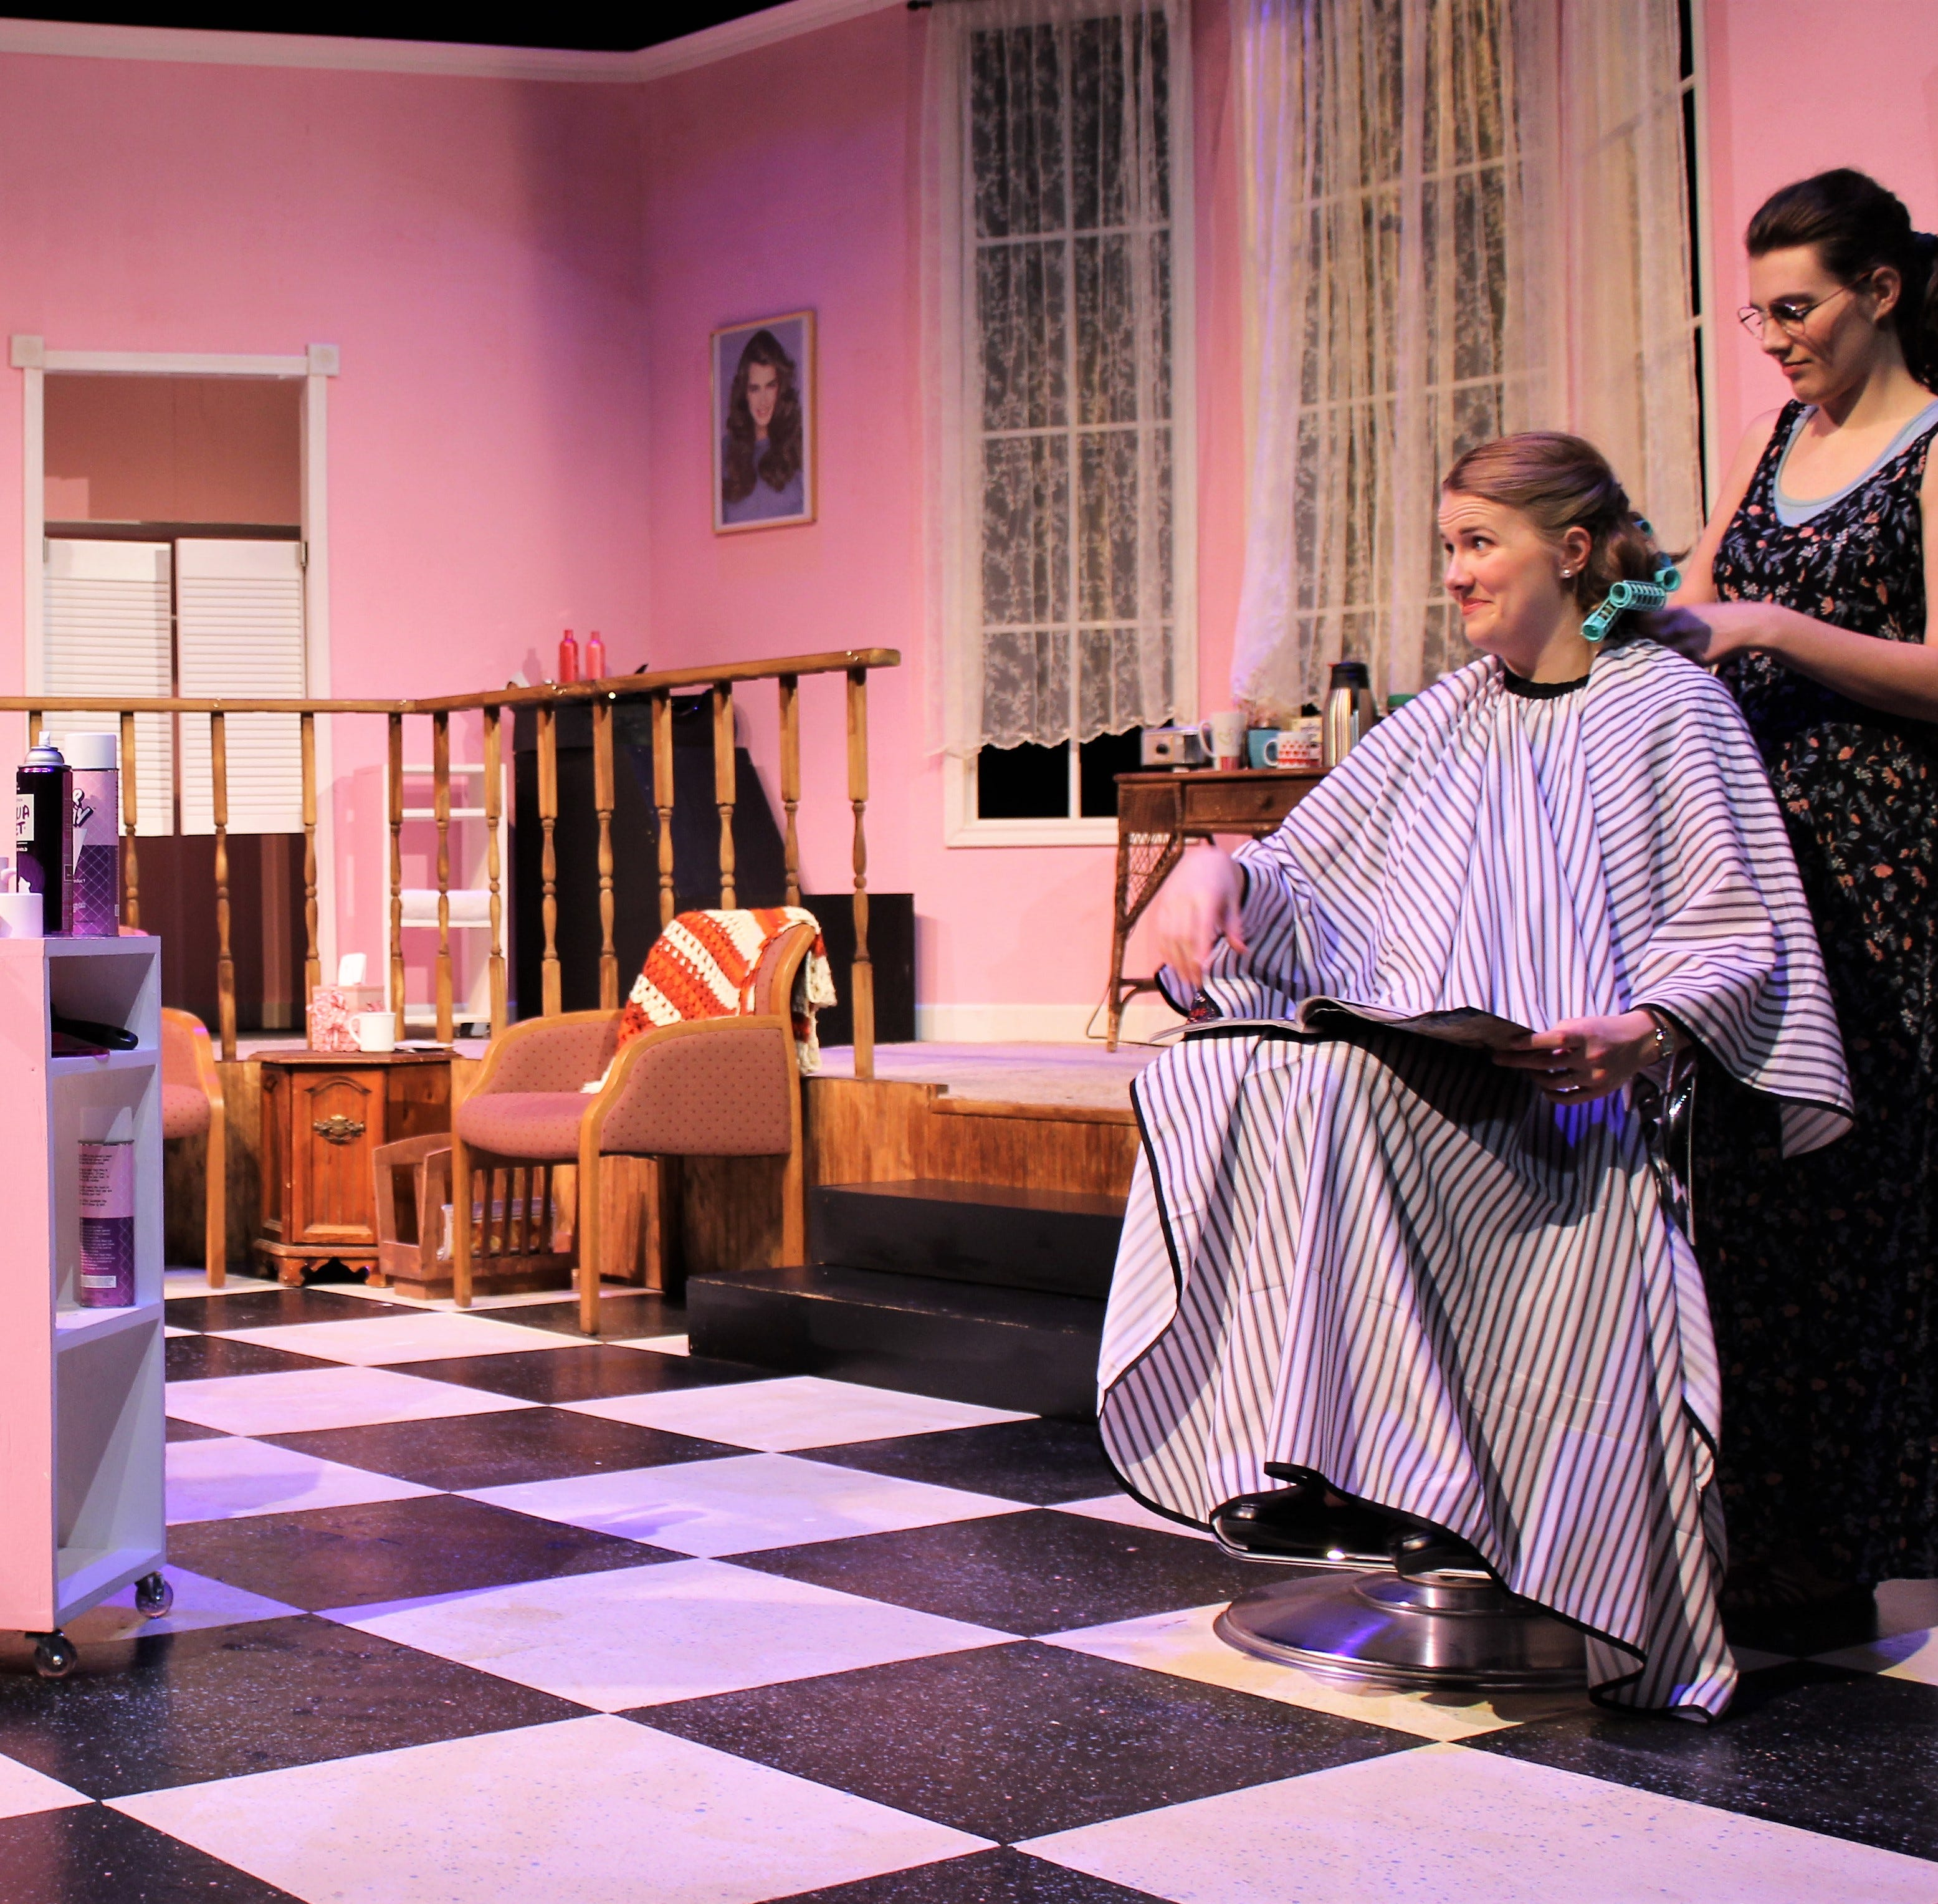 Women of 'Steel': All-female cast empowers Abilene Christian stage play